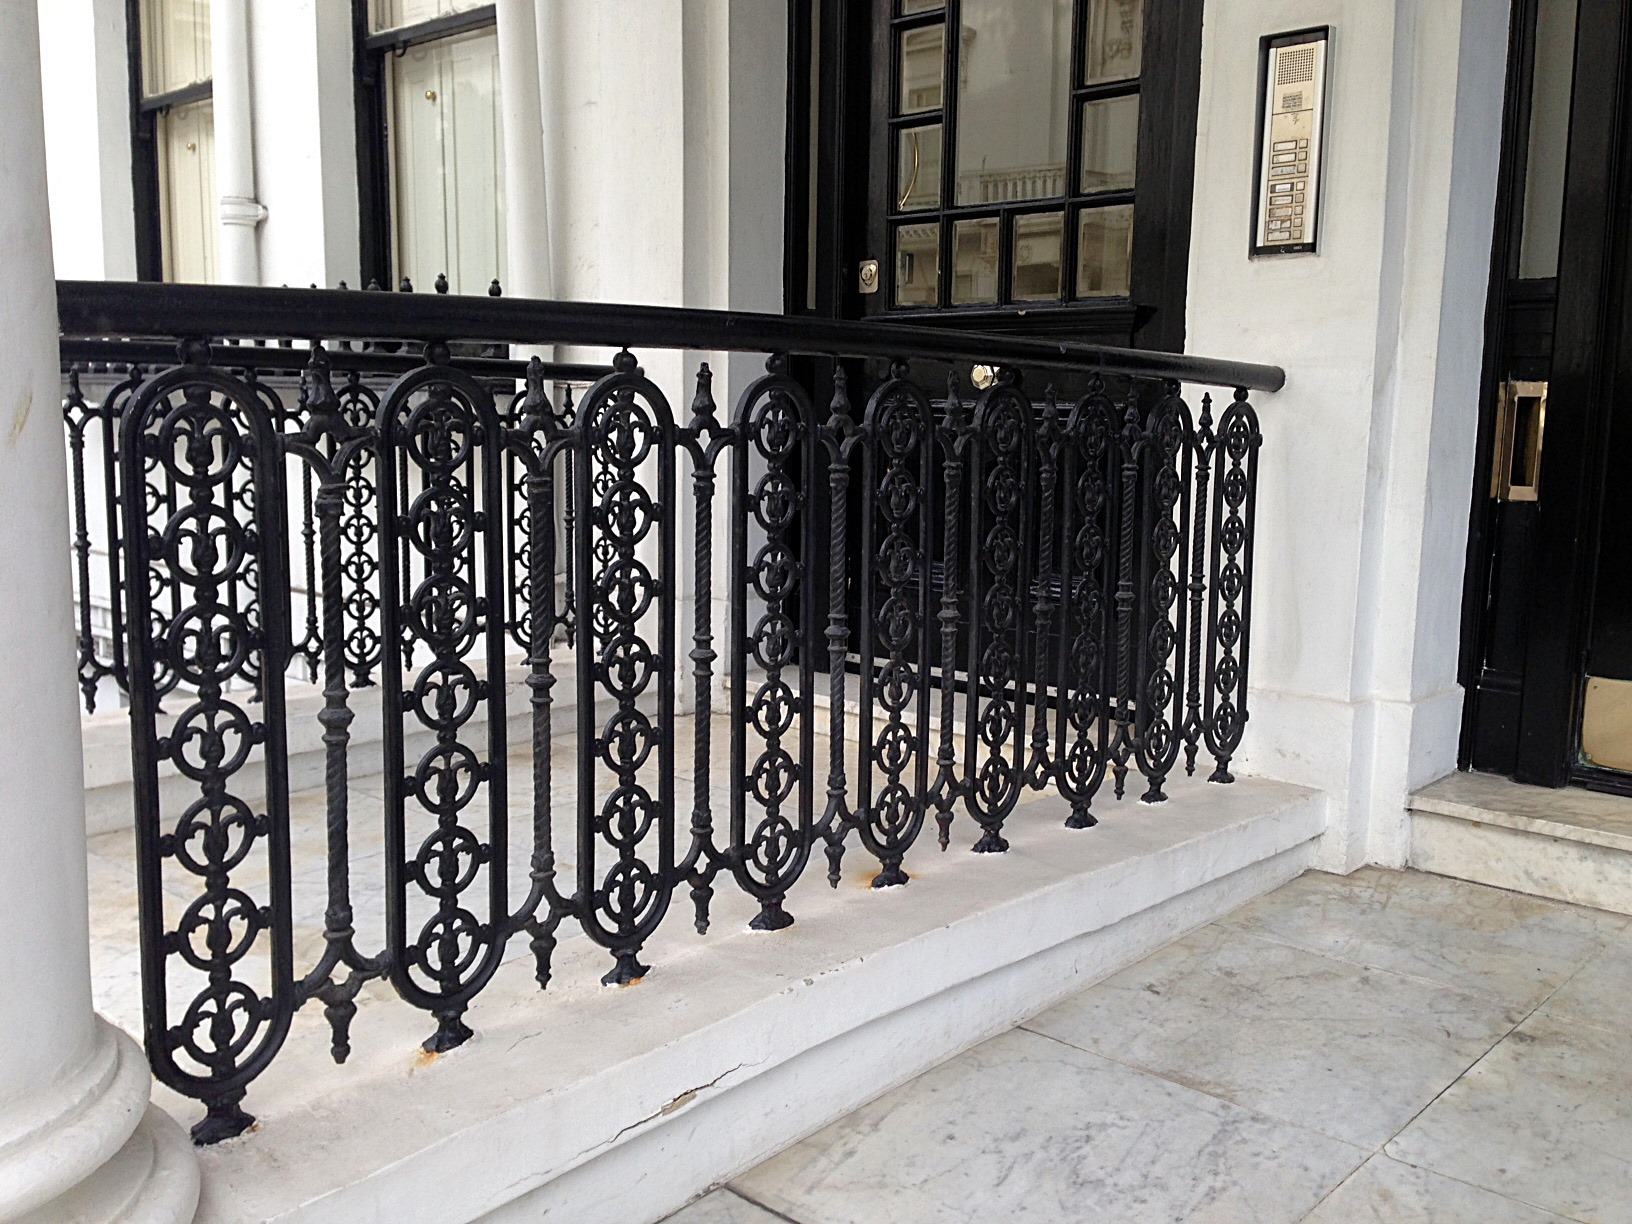 Kensington victorian wrought iron heritage rails side panels and foot scrape London (3)